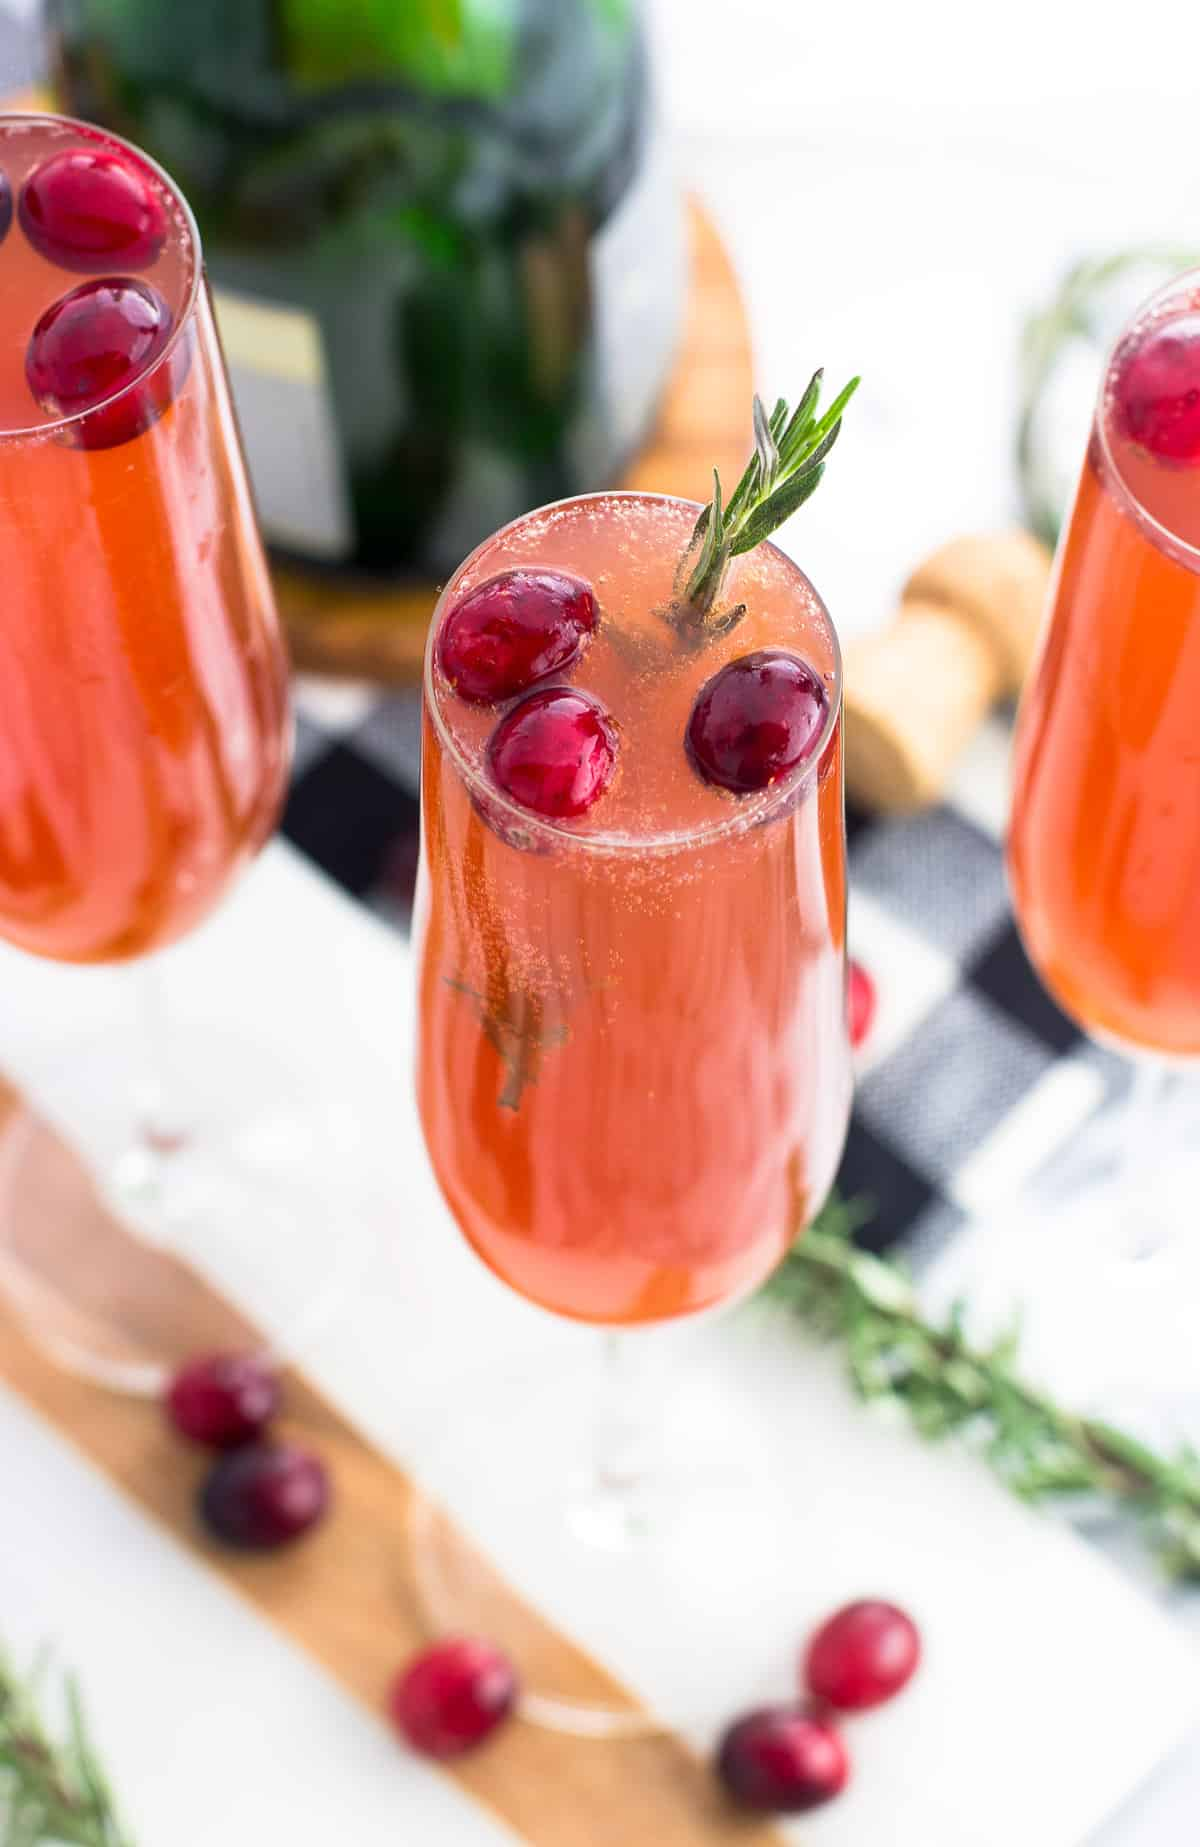 Three cranberry mimosas garnished with cranberries and rosemary sprigs